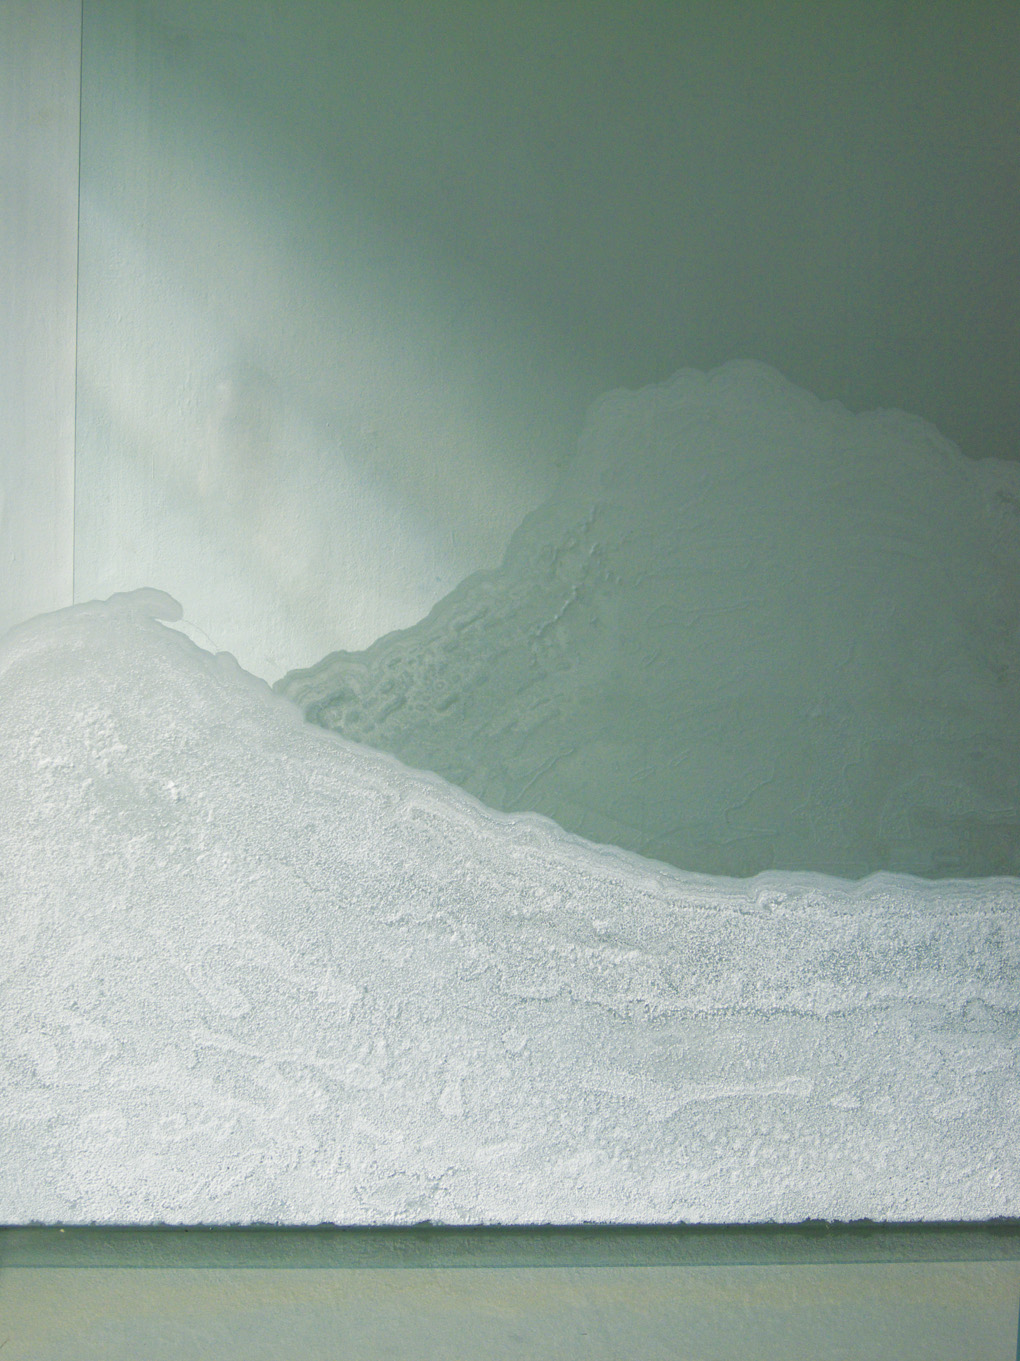 Thiago Rocha Pitta, A Rocky Mist, 2009. Photo & courtesy: Thiago Rocha Pitta.